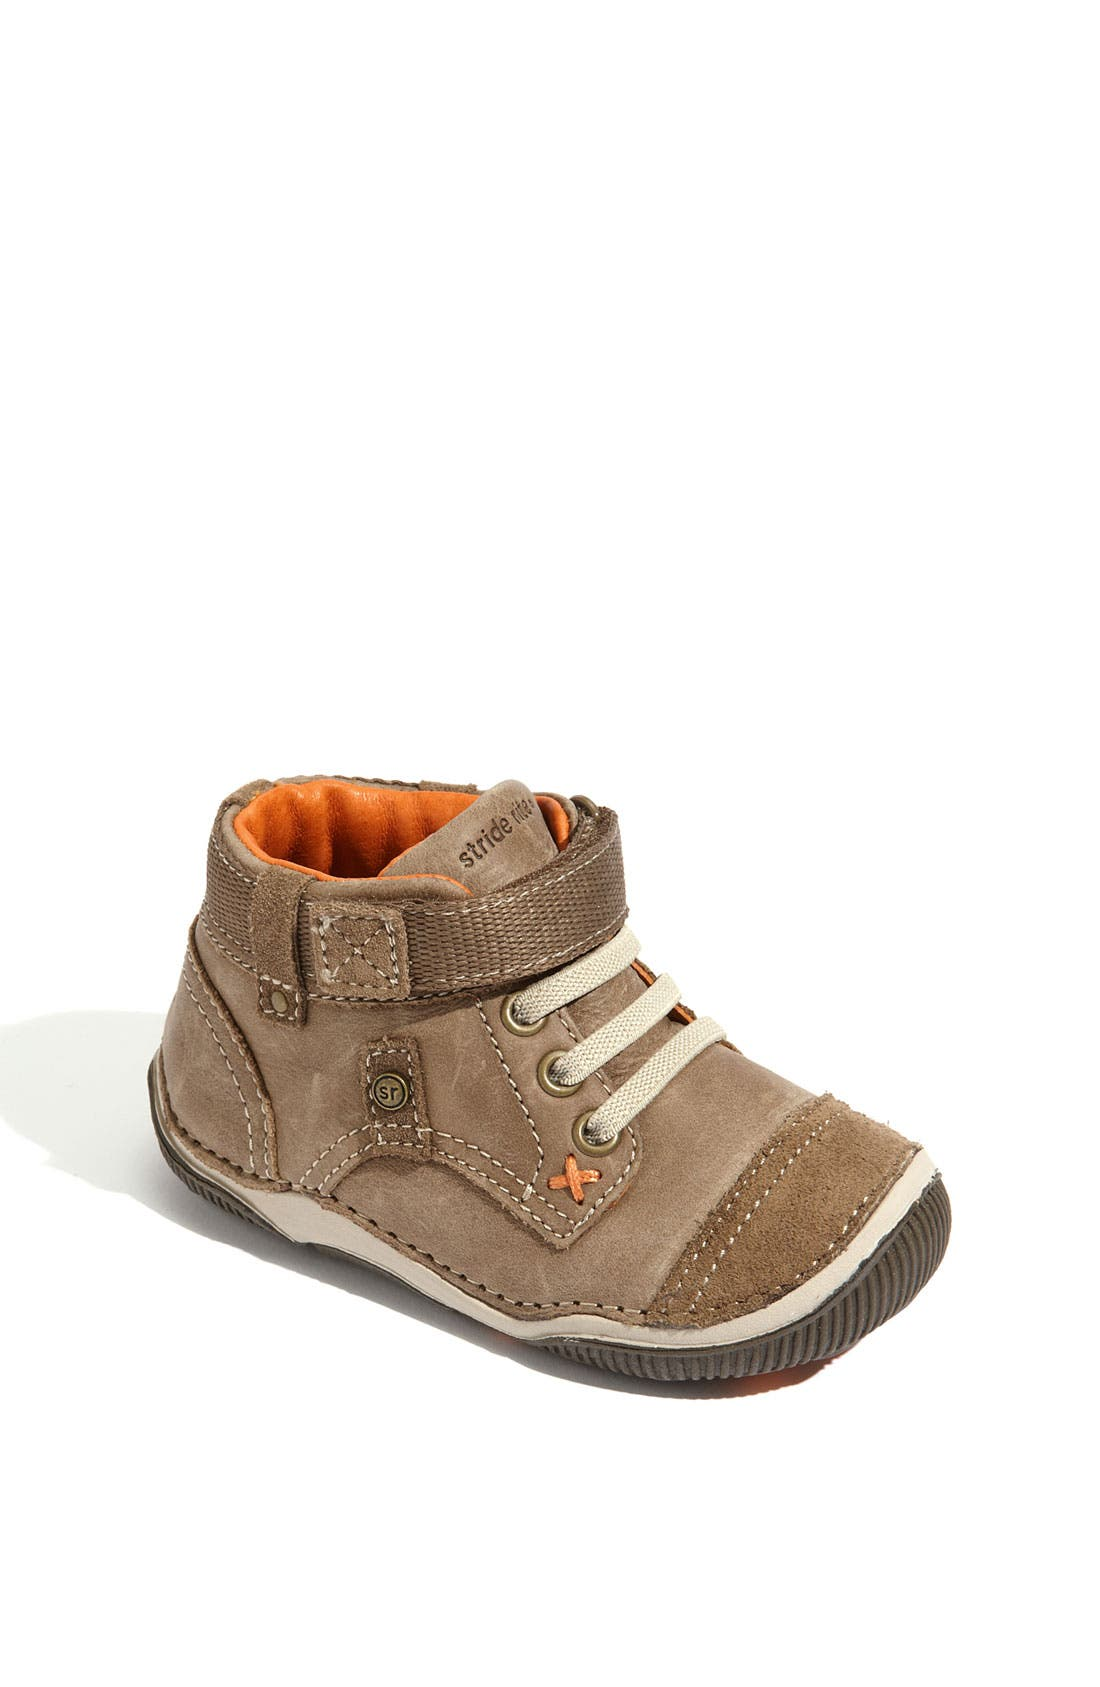 Alternate Image 1 Selected - Stride Rite 'Garett' Shoe (Baby, Walker & Toddler)